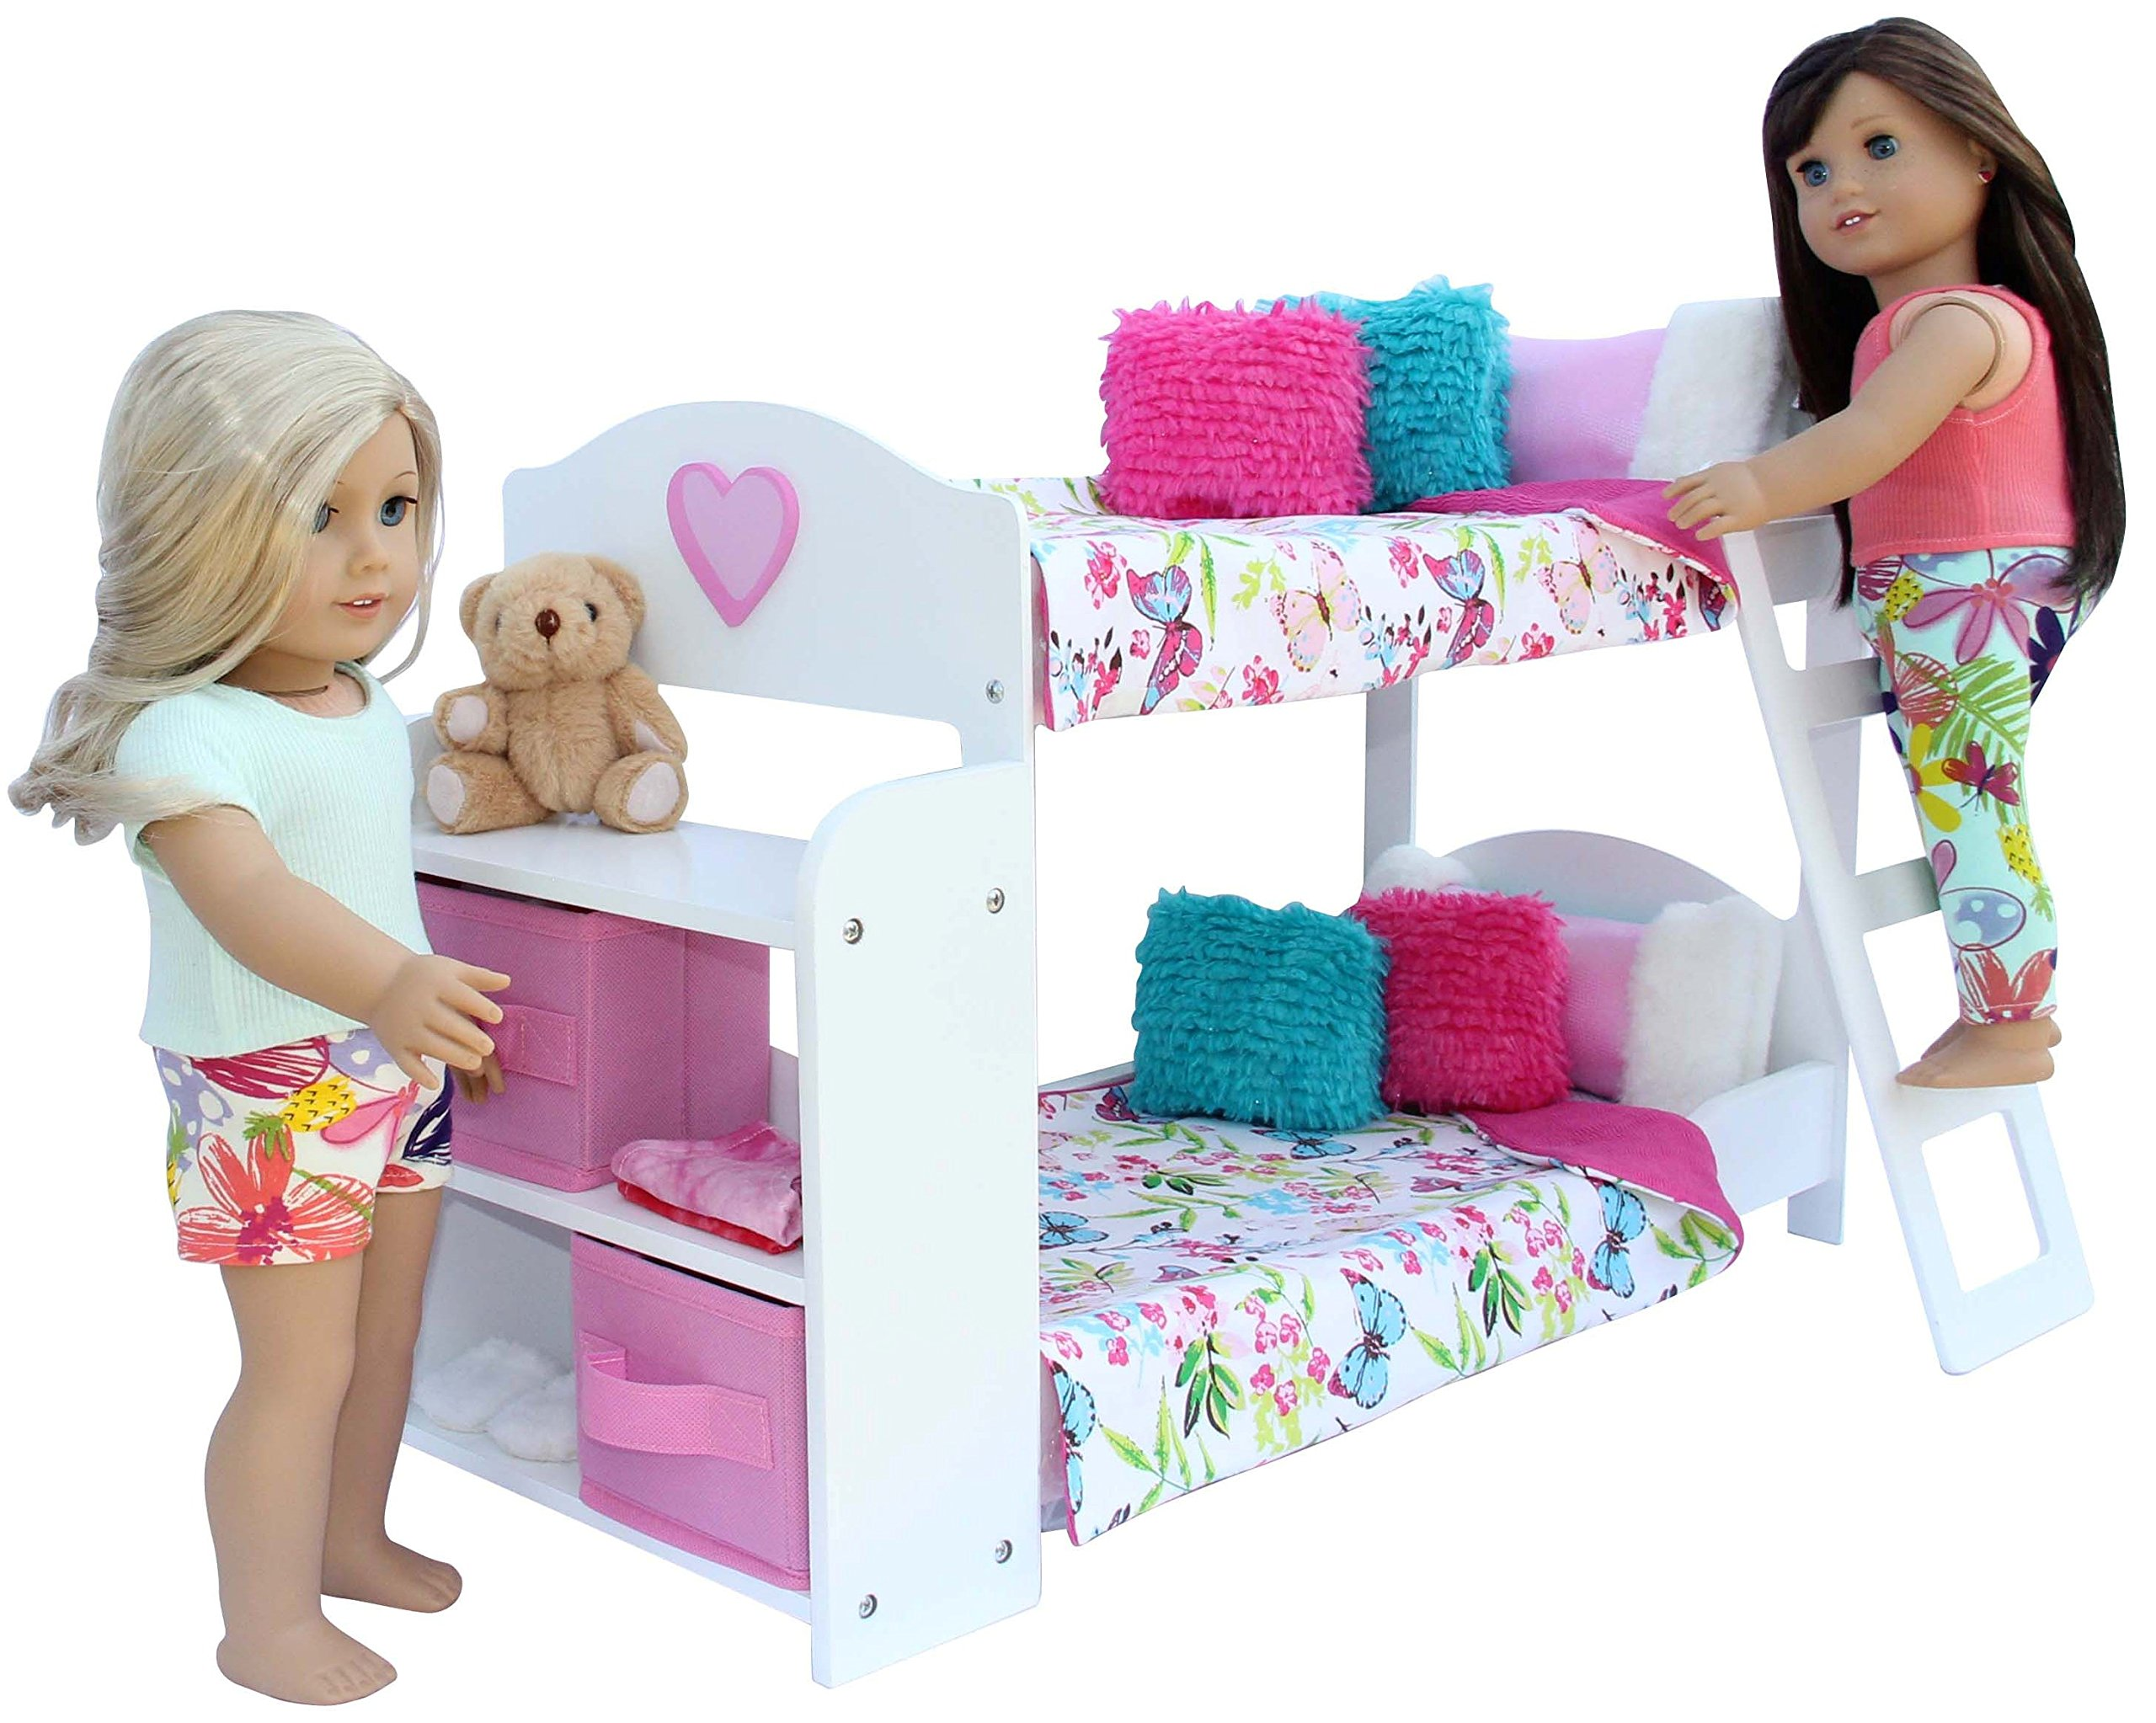 PZAS Toys Bedroom Set for 18-Inch American Girl Doll, 20-Pieces